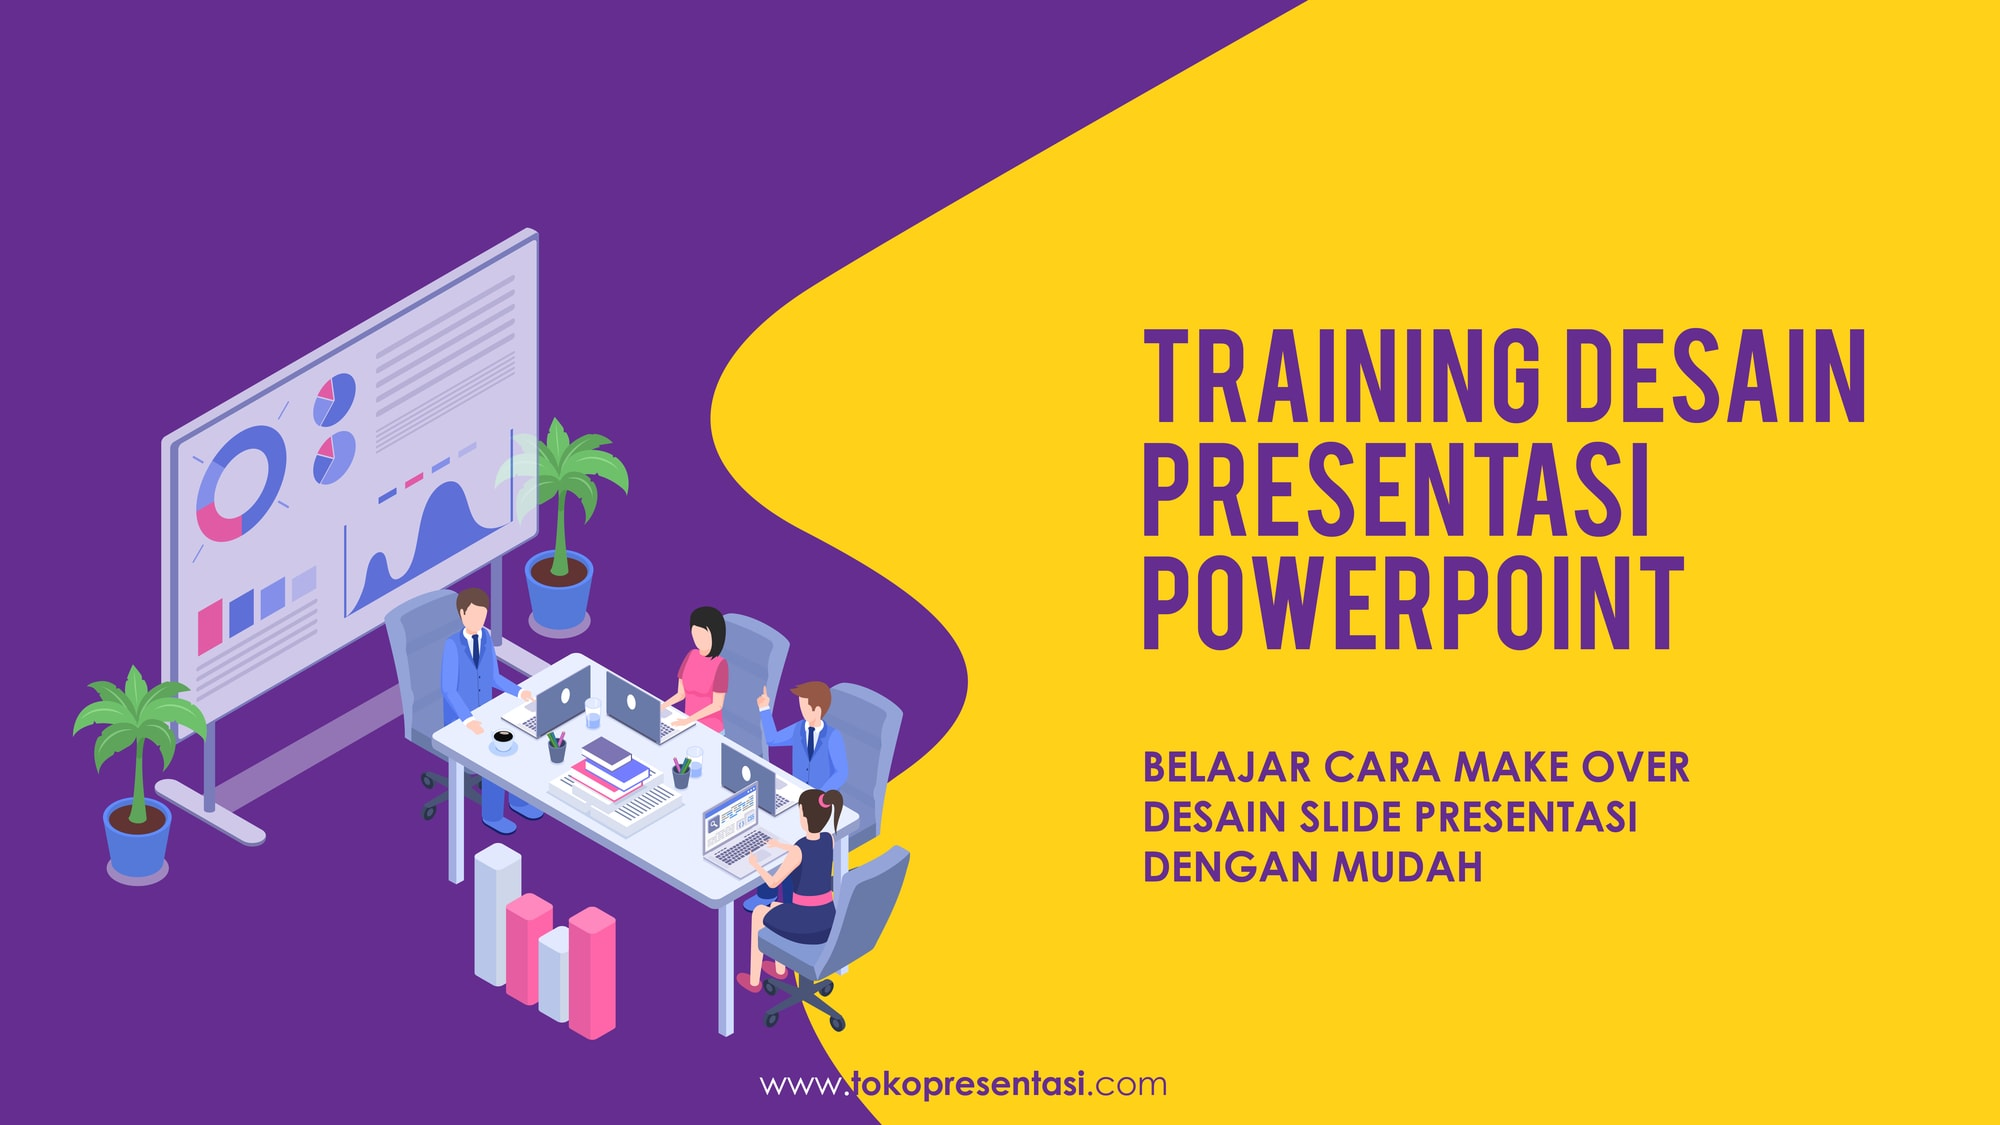 Pelatihan Desain Presentasi PowerPoint Telkom Corporate University Tokopresentasi